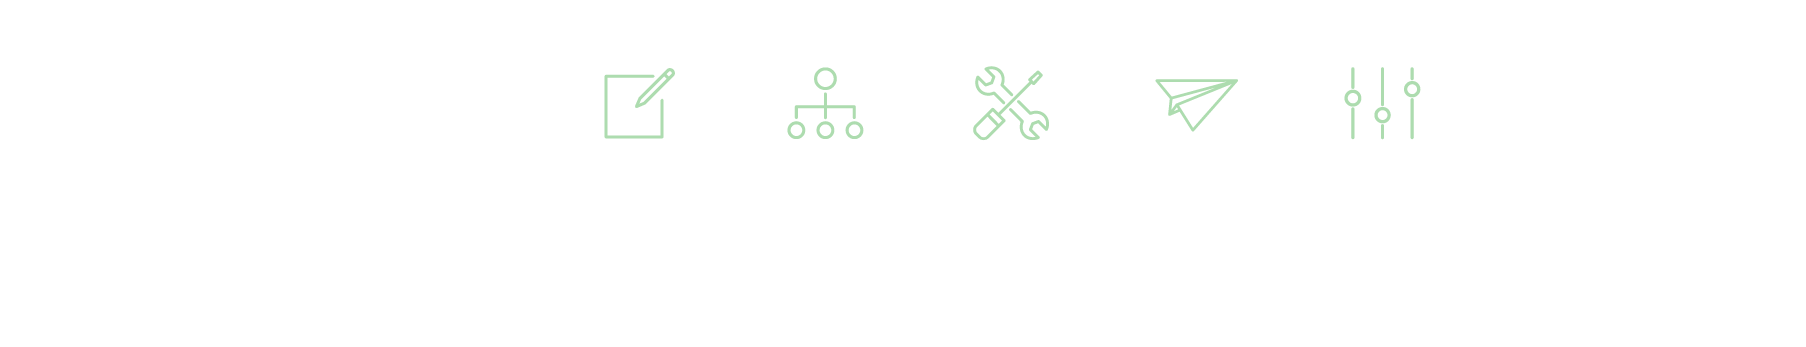 our approach_redesign methodology_diagnostic